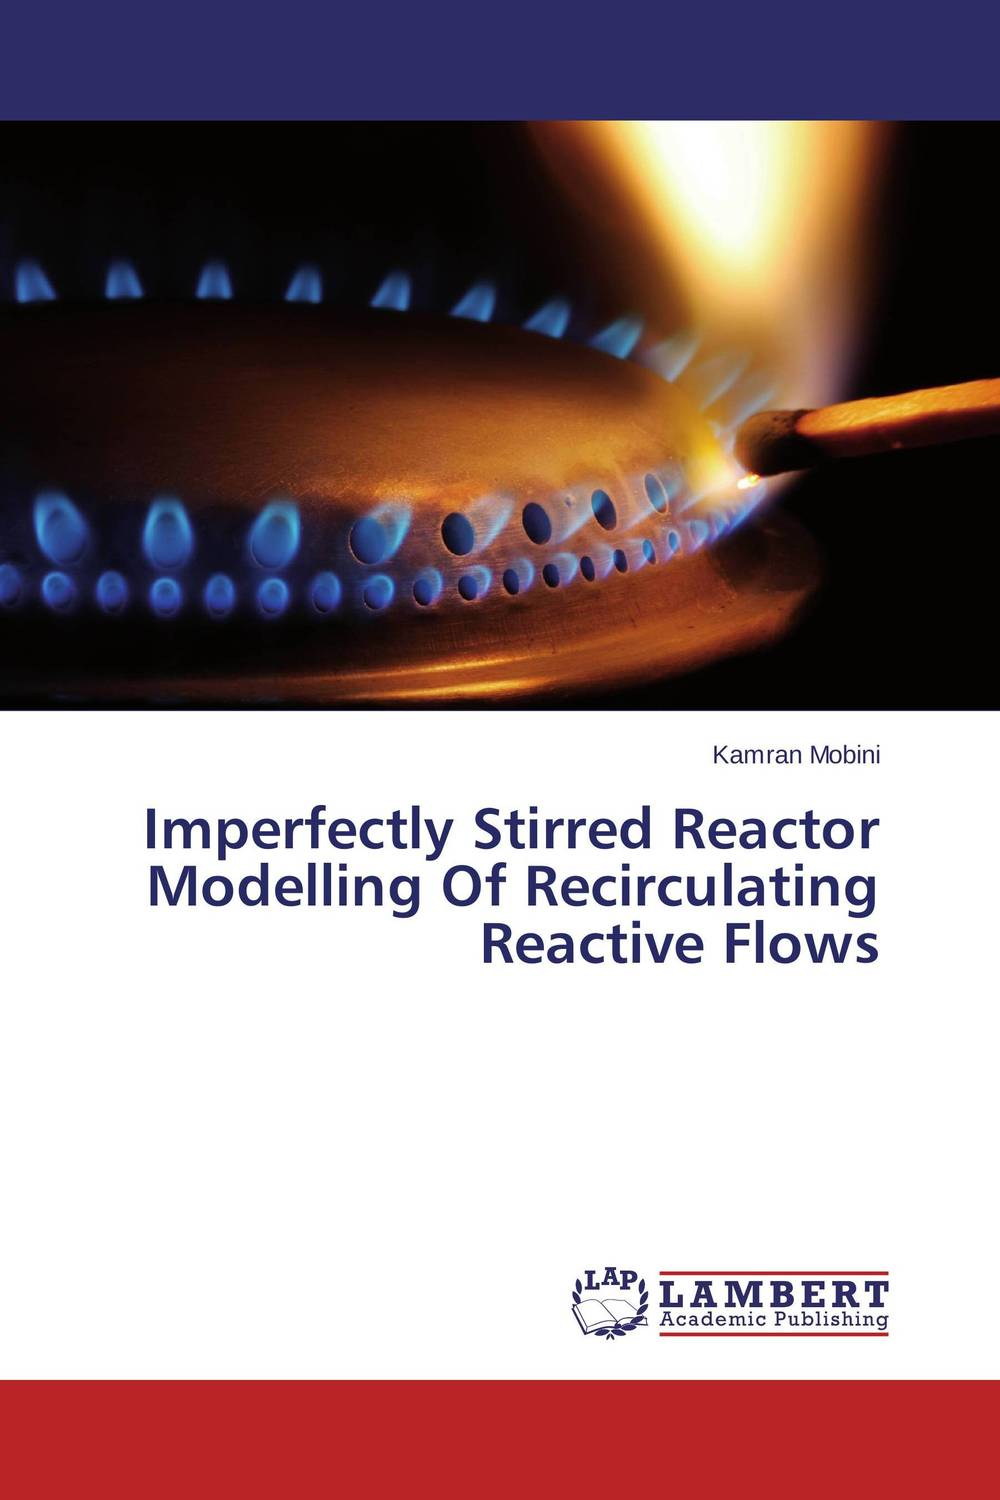 Imperfectly Stirred Reactor Modelling Of Recirculating Reactive Flows